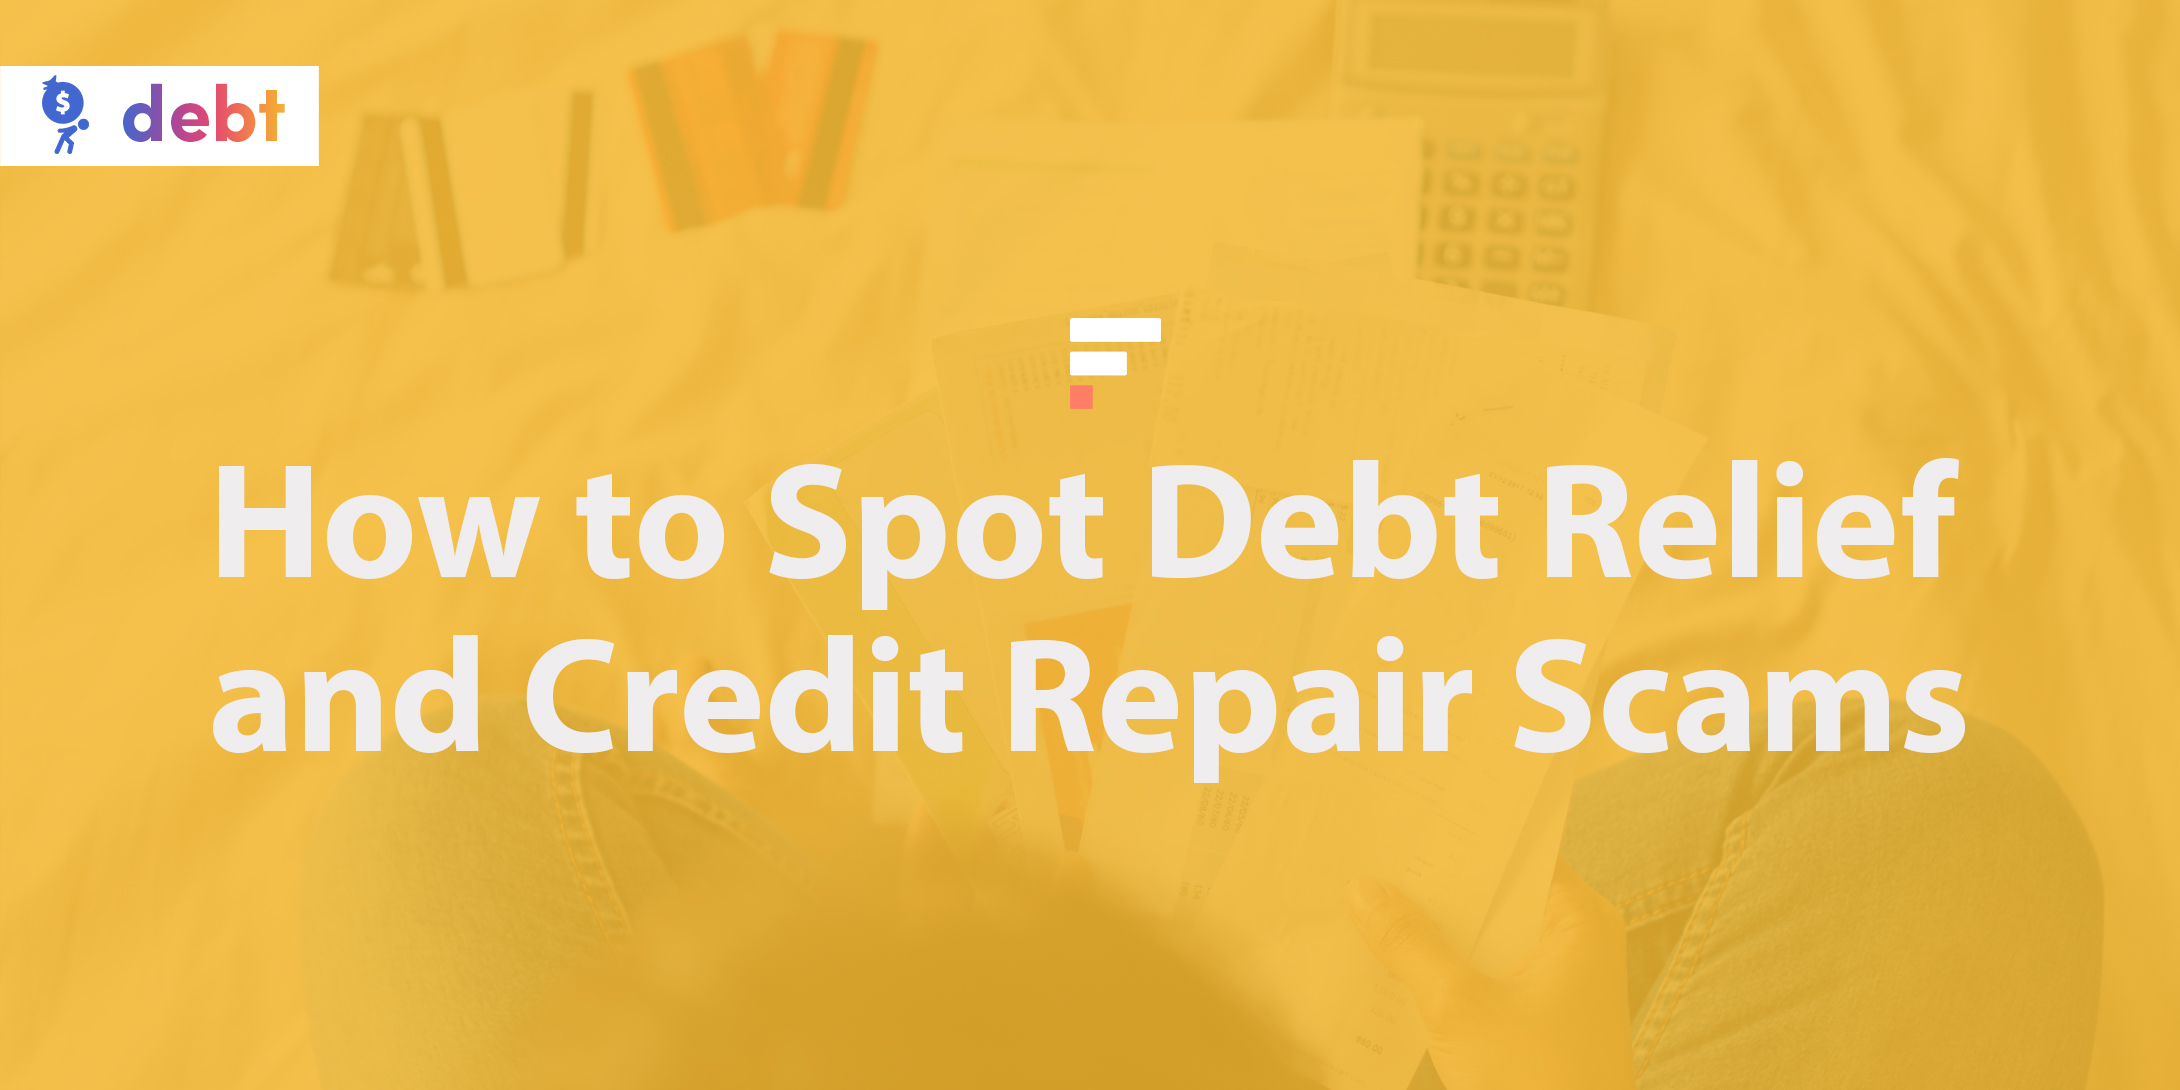 How to Spot Debt Relief and Credit Repair Scams